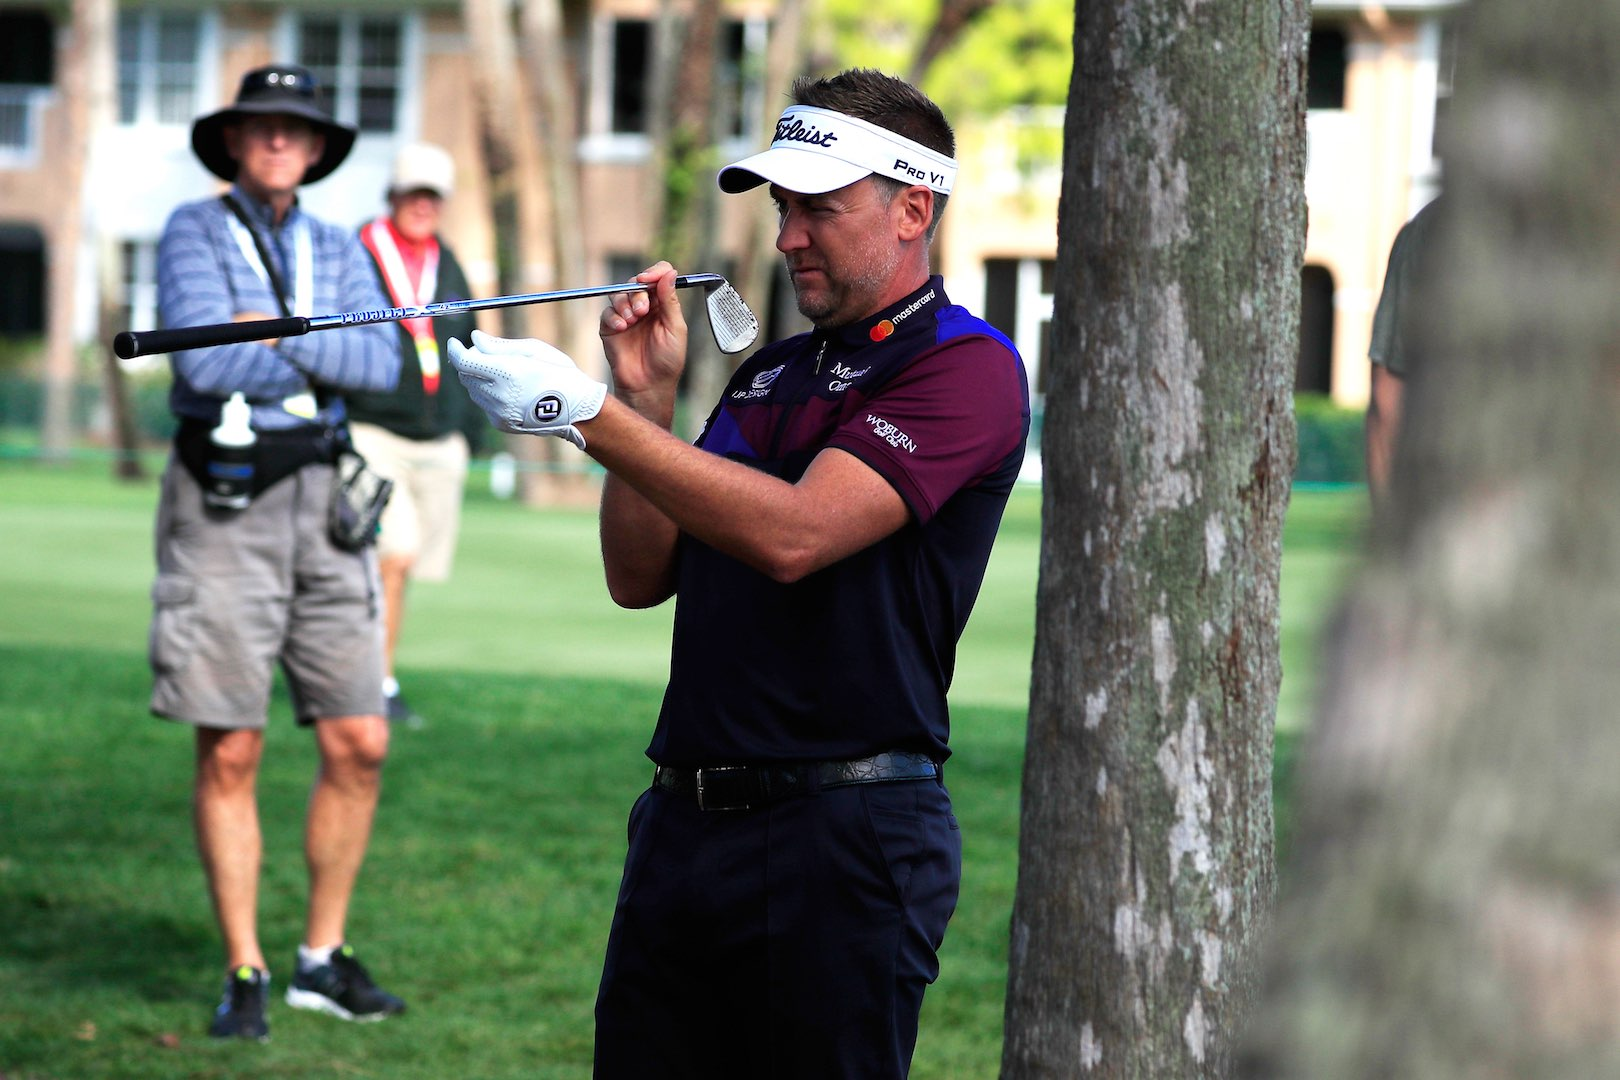 Ian Poulter fires 67 in tour card rescue latest